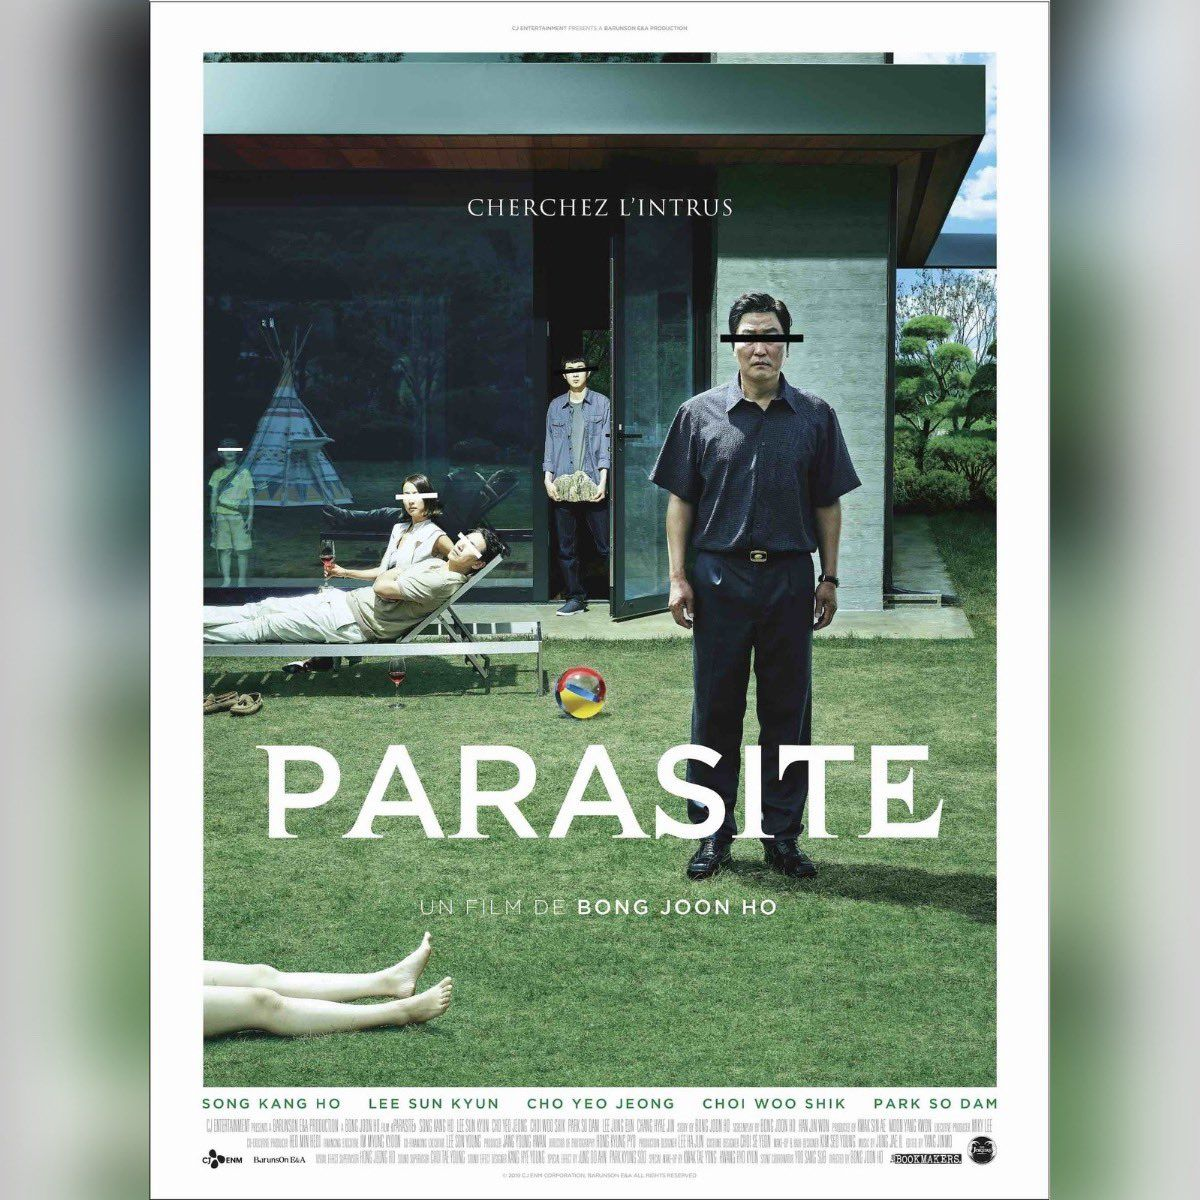 FULLWATCH! Parasite 2019 FULL. ONLINE. MOVIE. HD Free